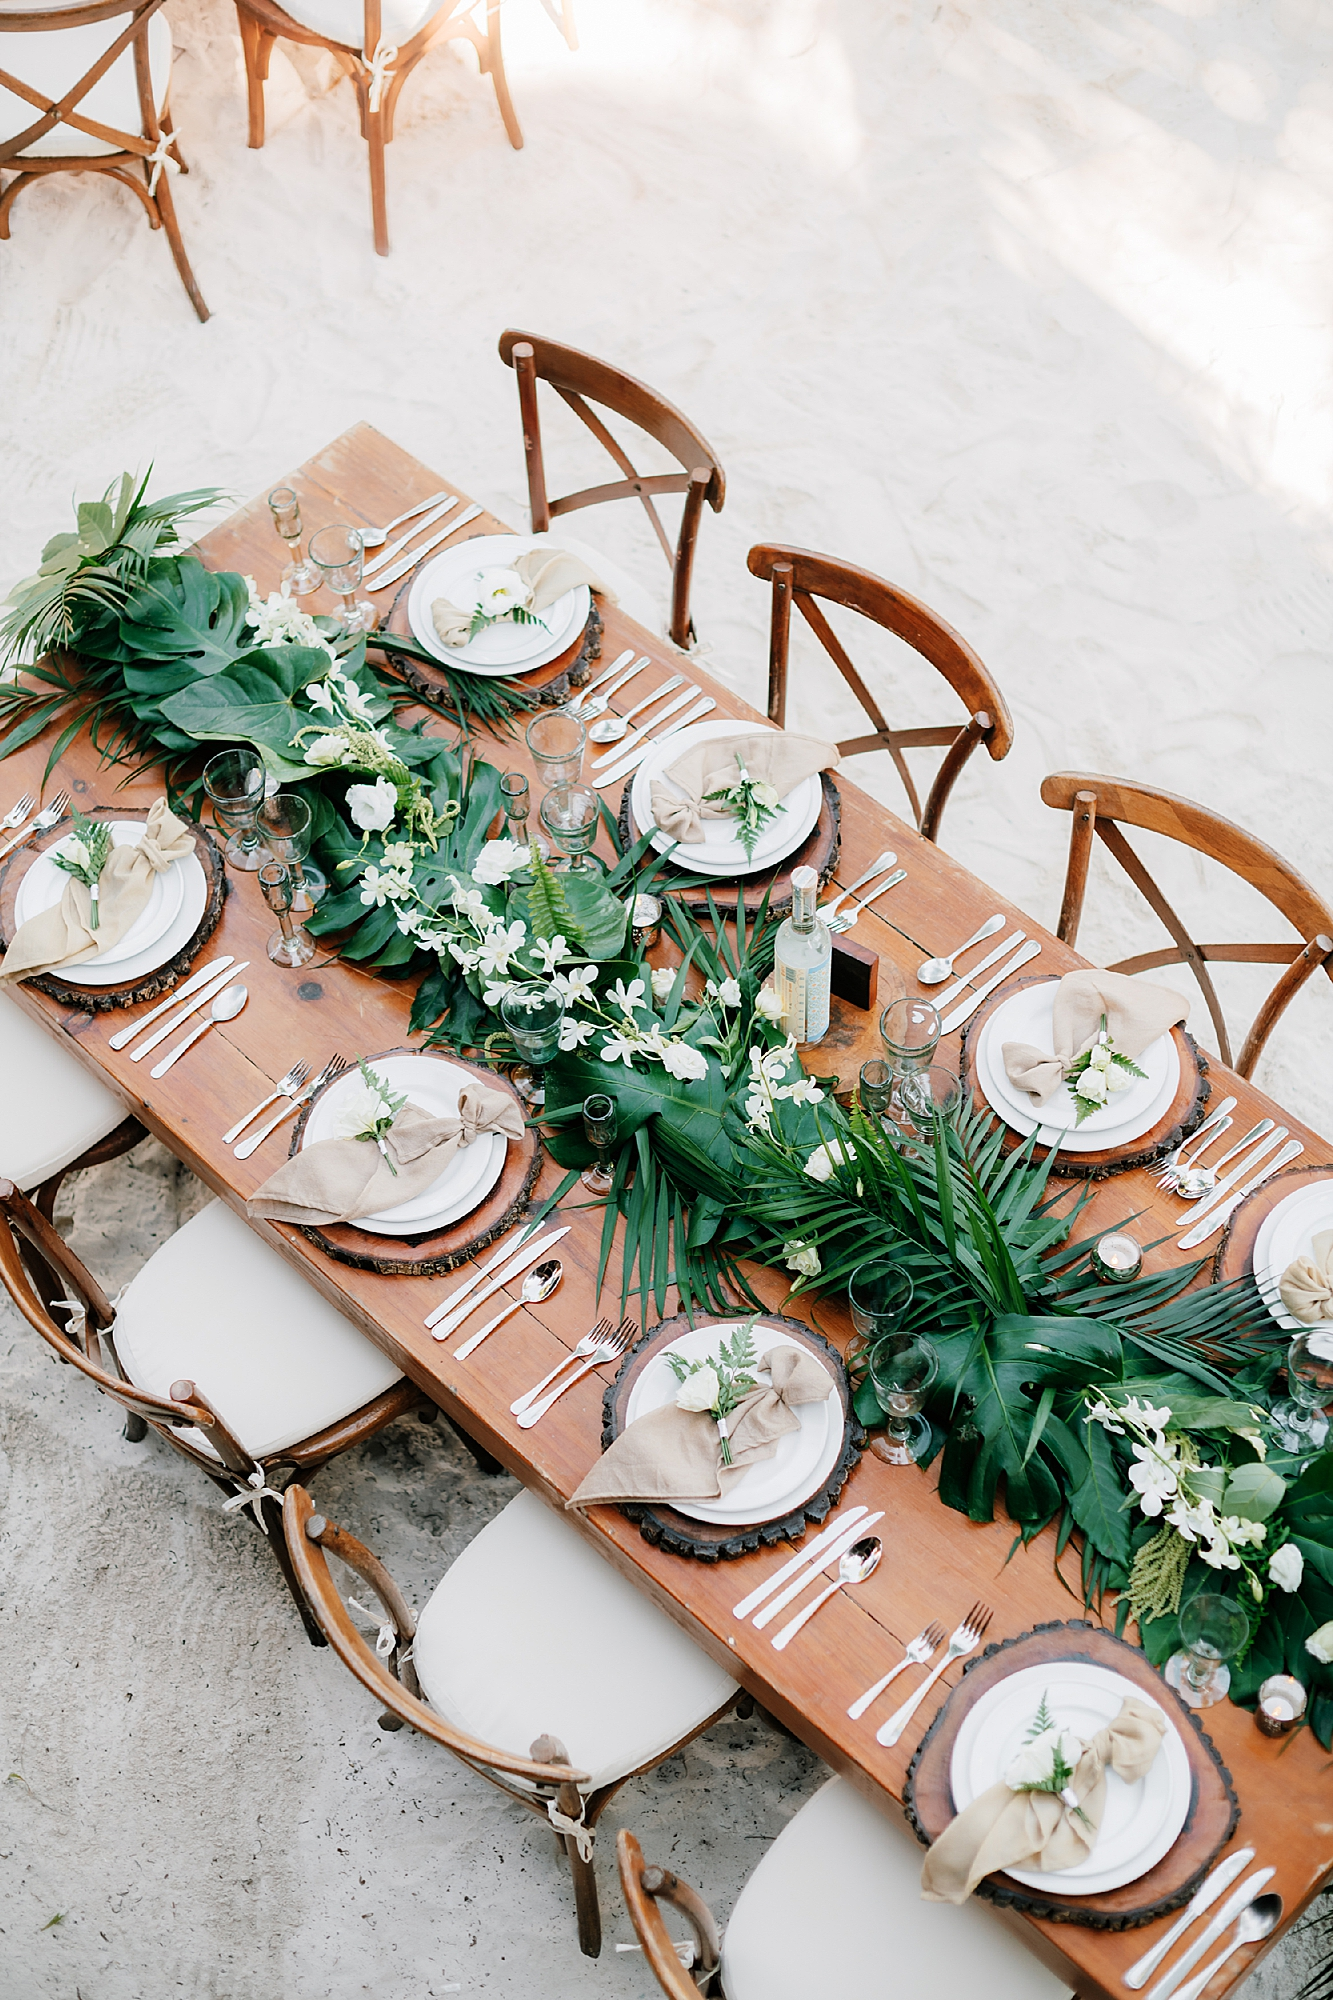 Stylish and Candid Destination Film Wedding Photography in Tulum Mexico by Magdalena Studios 0029